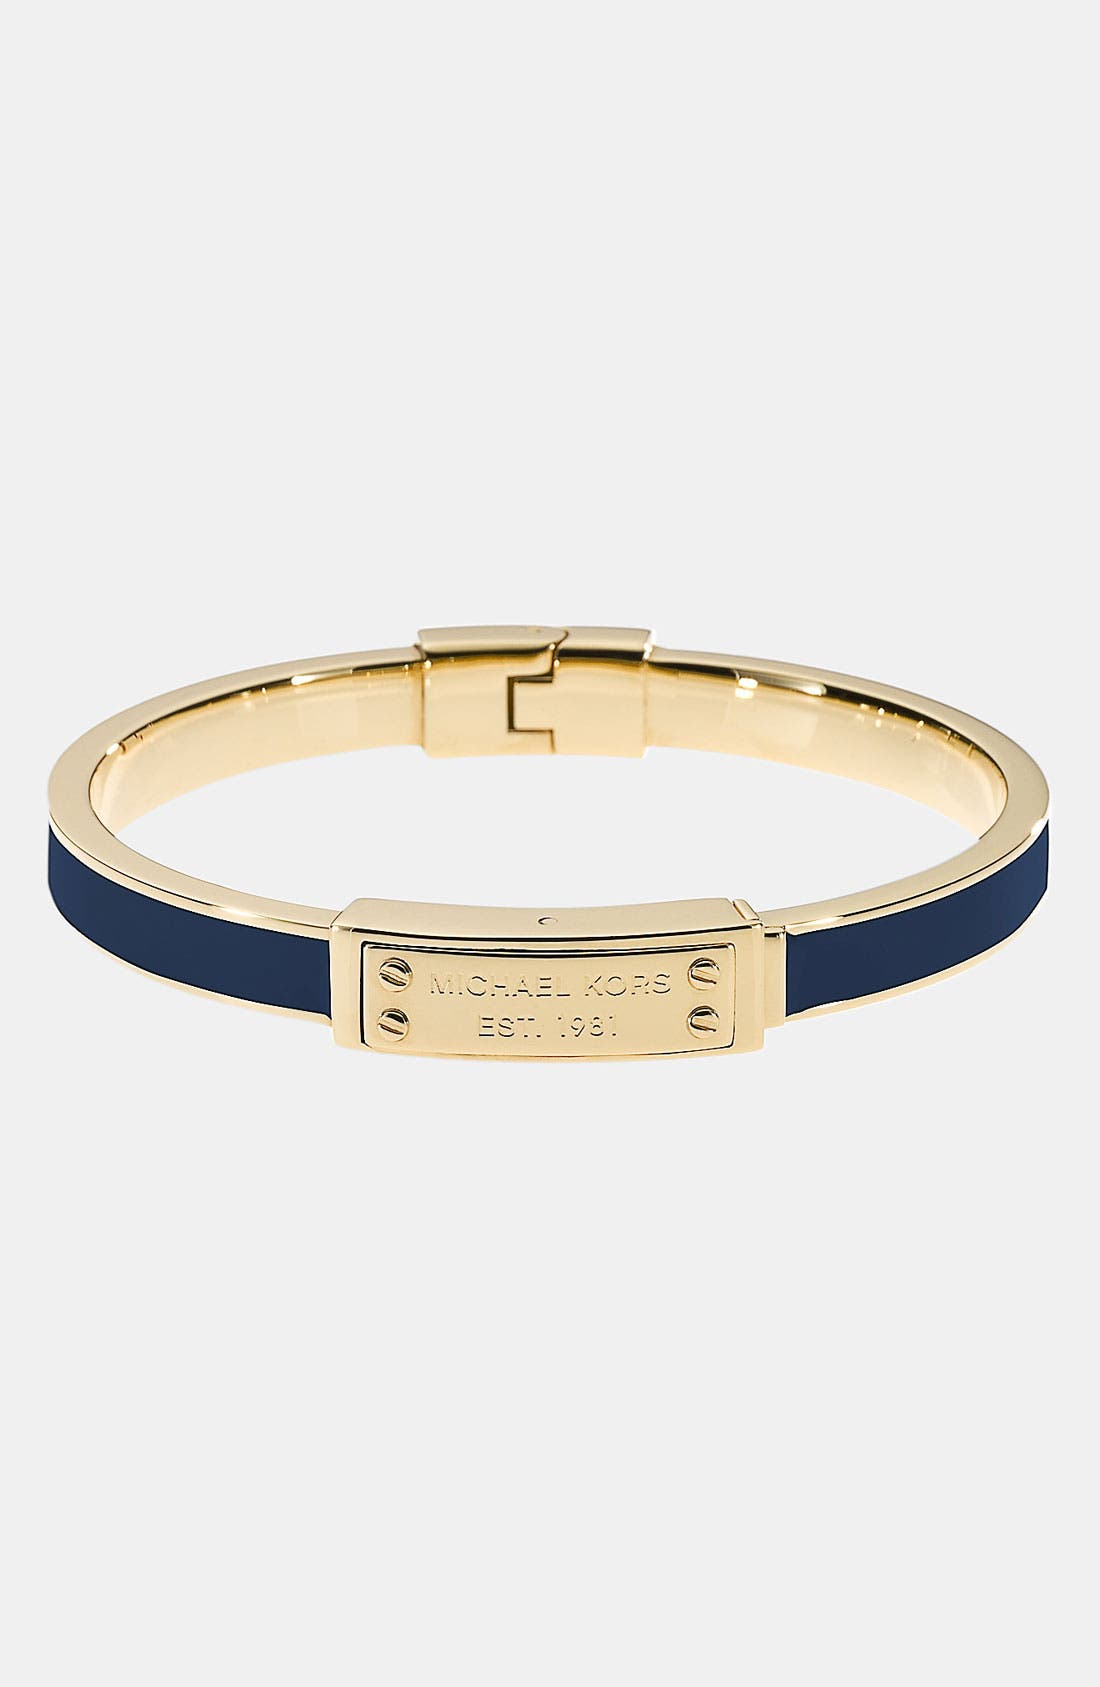 Main Image - Michael Kors Hinged Bangle